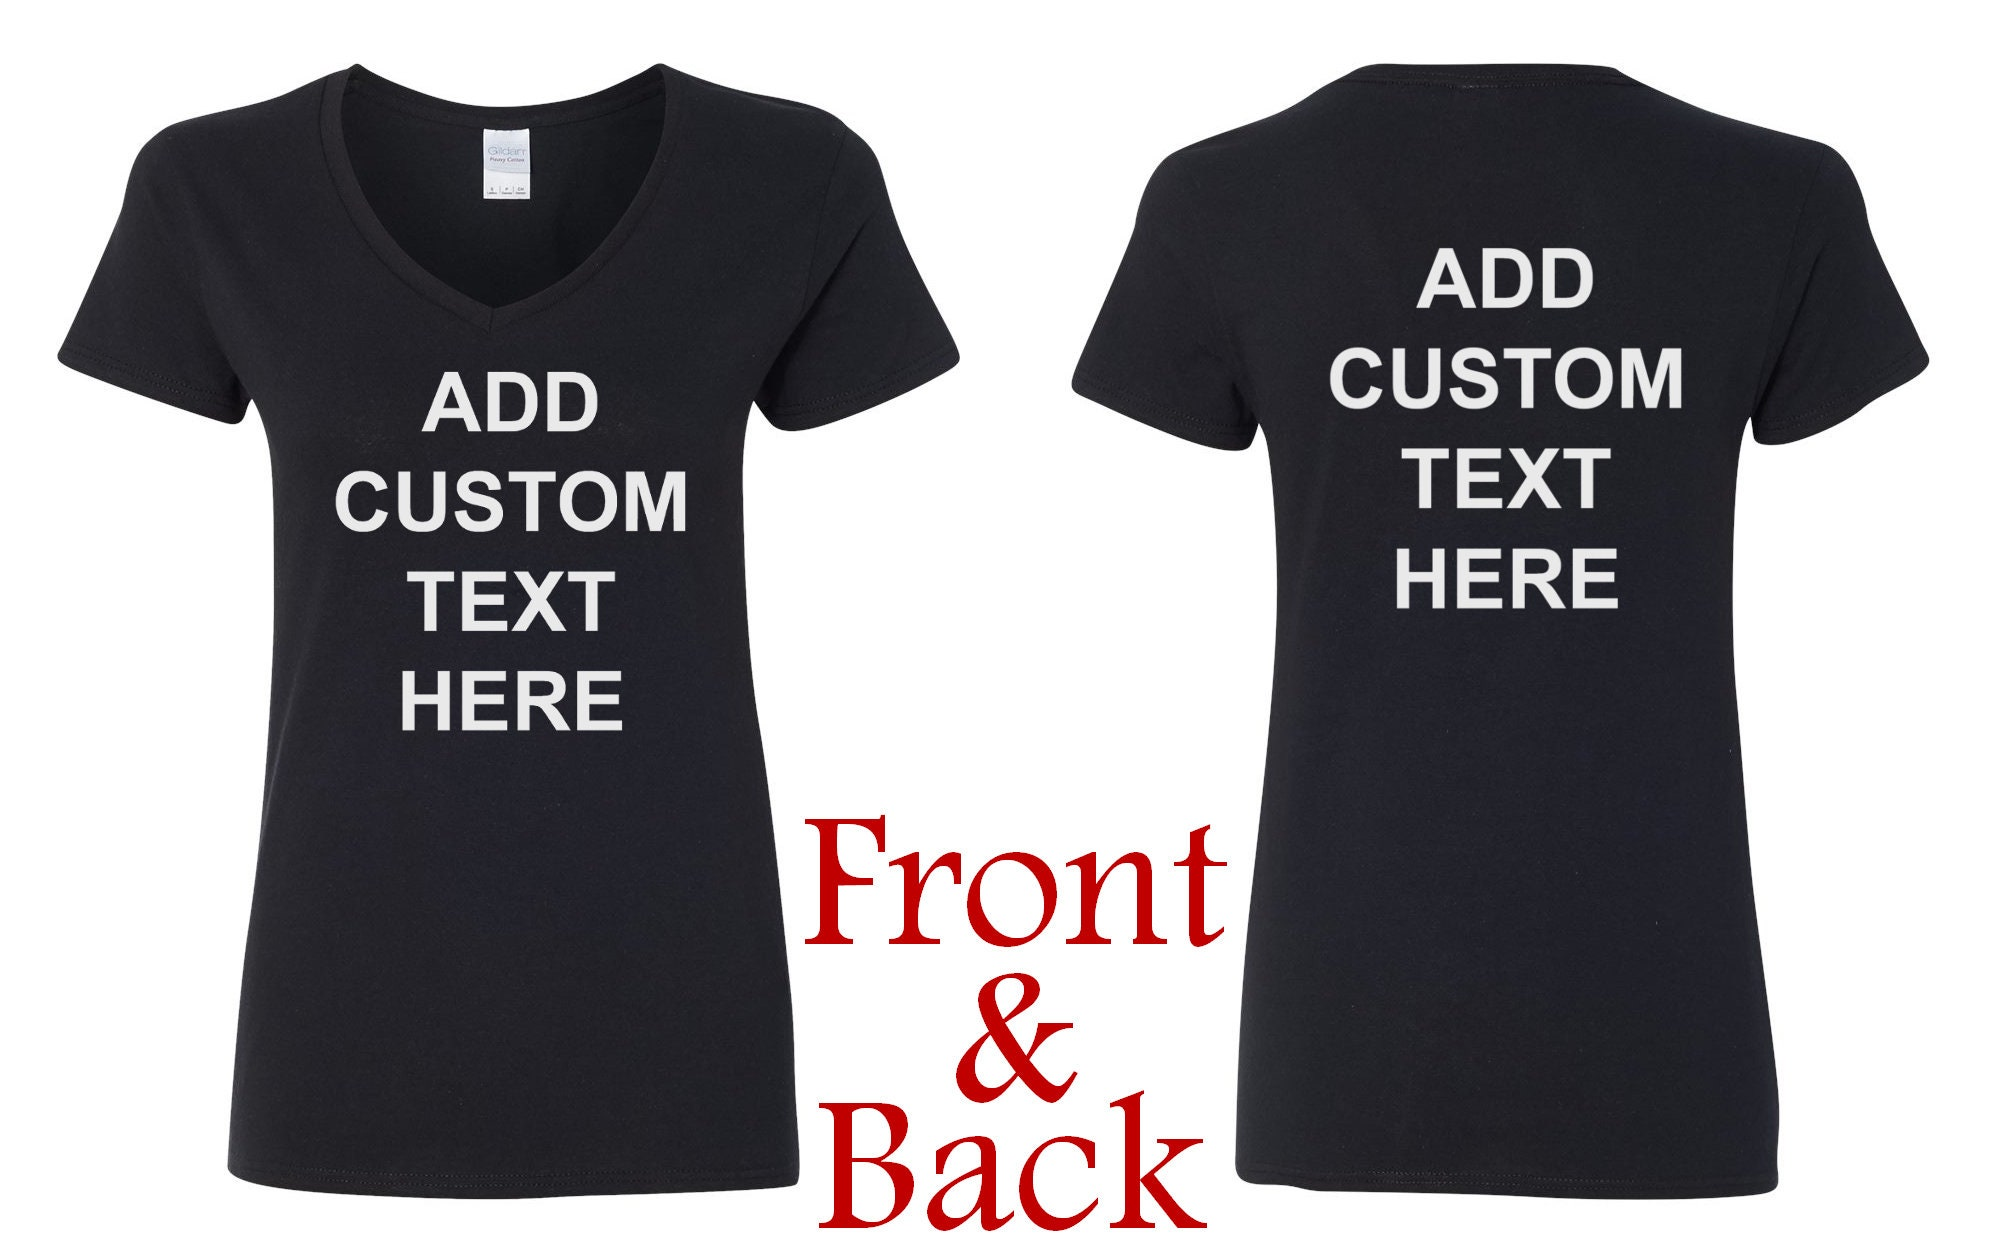 8bcabb039 ... Front & Back - Personalized Customized T Shirts - Your Own Text -  Business Name. gallery photo ...